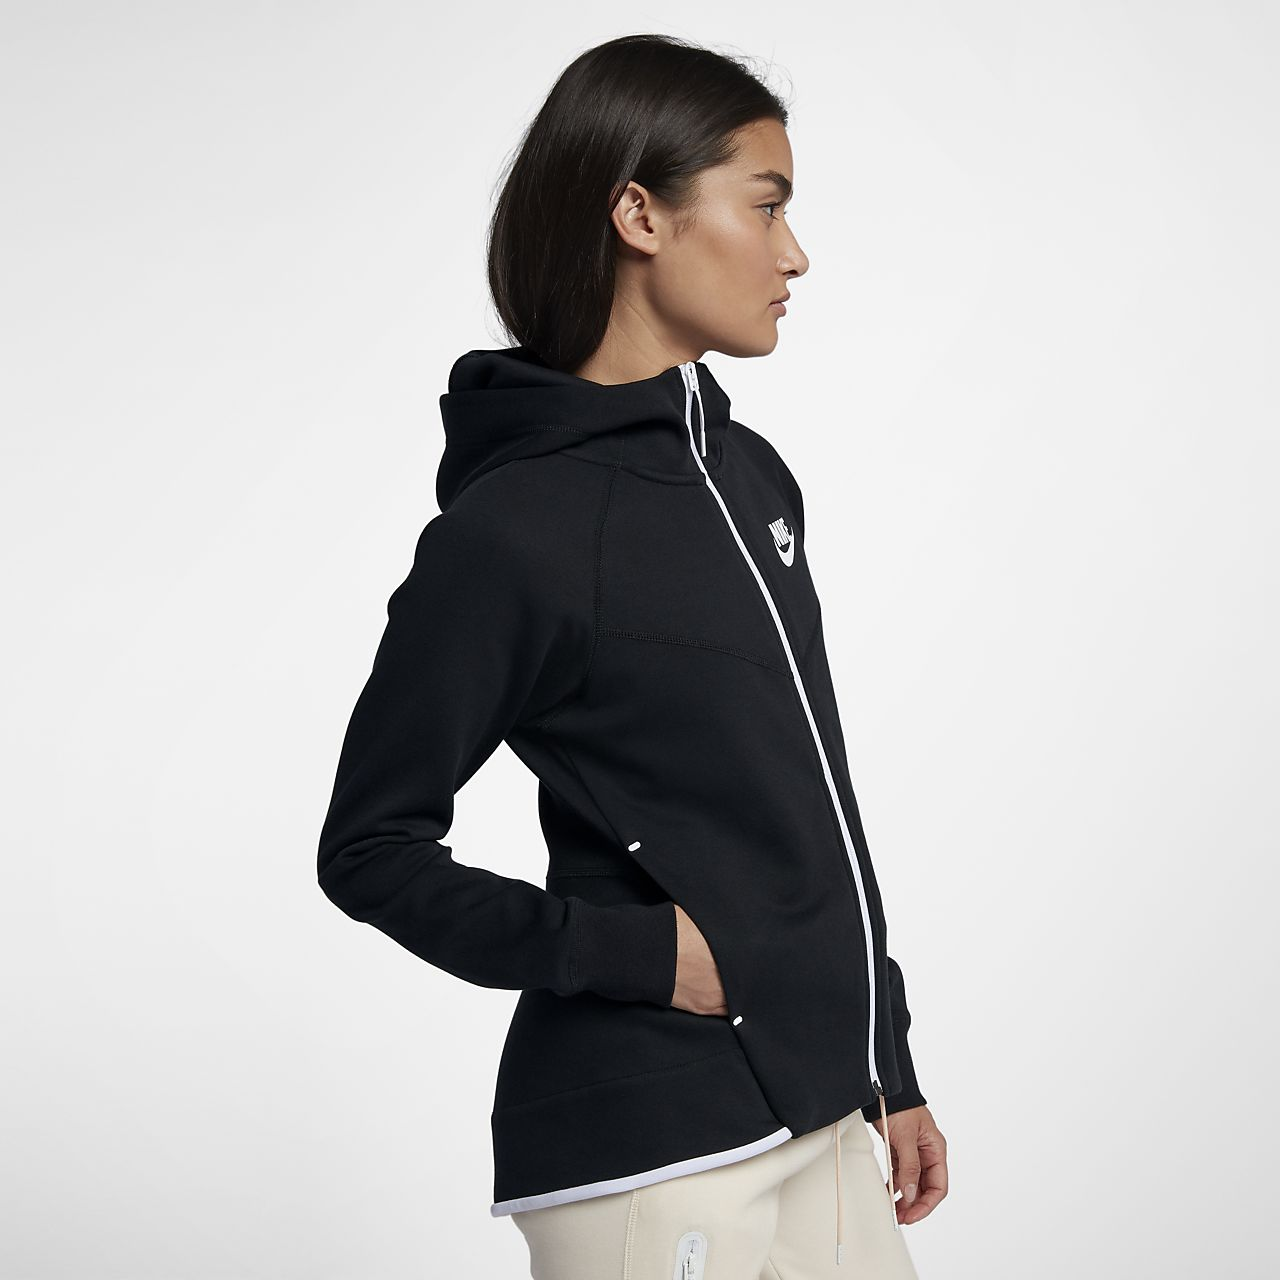 966c66cb771e Nike Sportswear Tech Fleece Windrunner Women s Full-Zip Hoodie. Nike.com